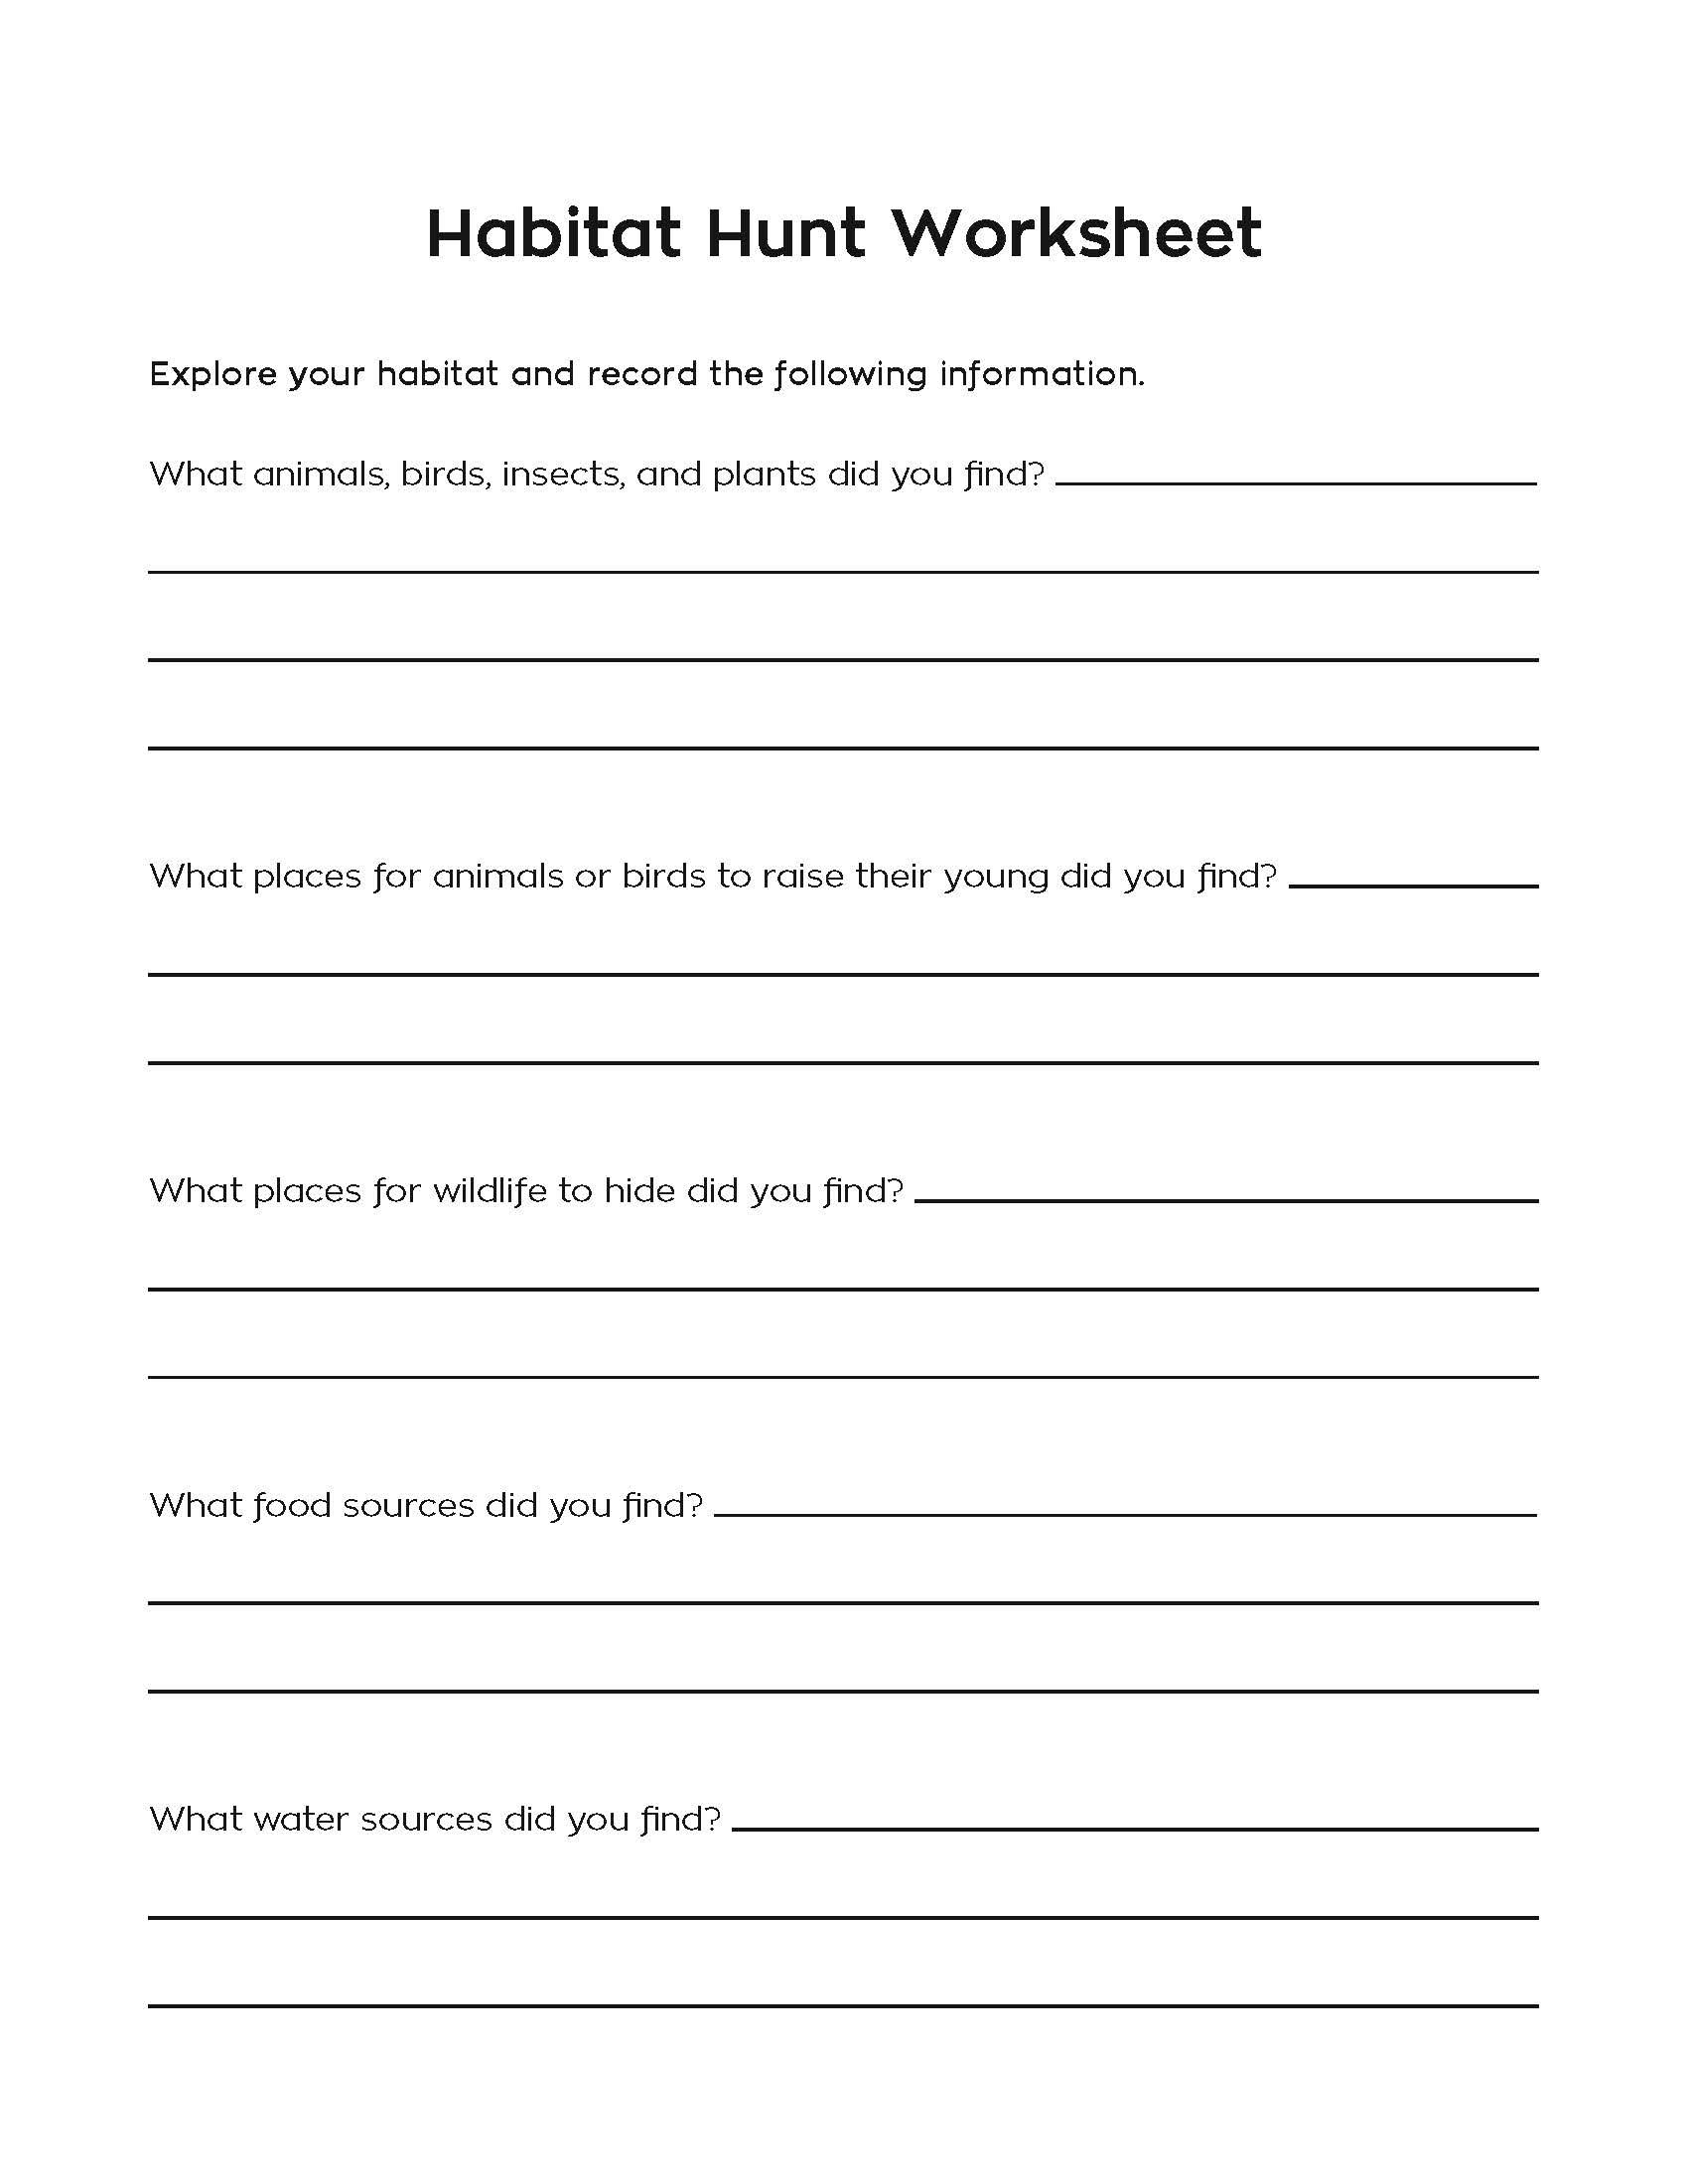 Meeting 12 Use This Worksheet For Your Habitat Hunt